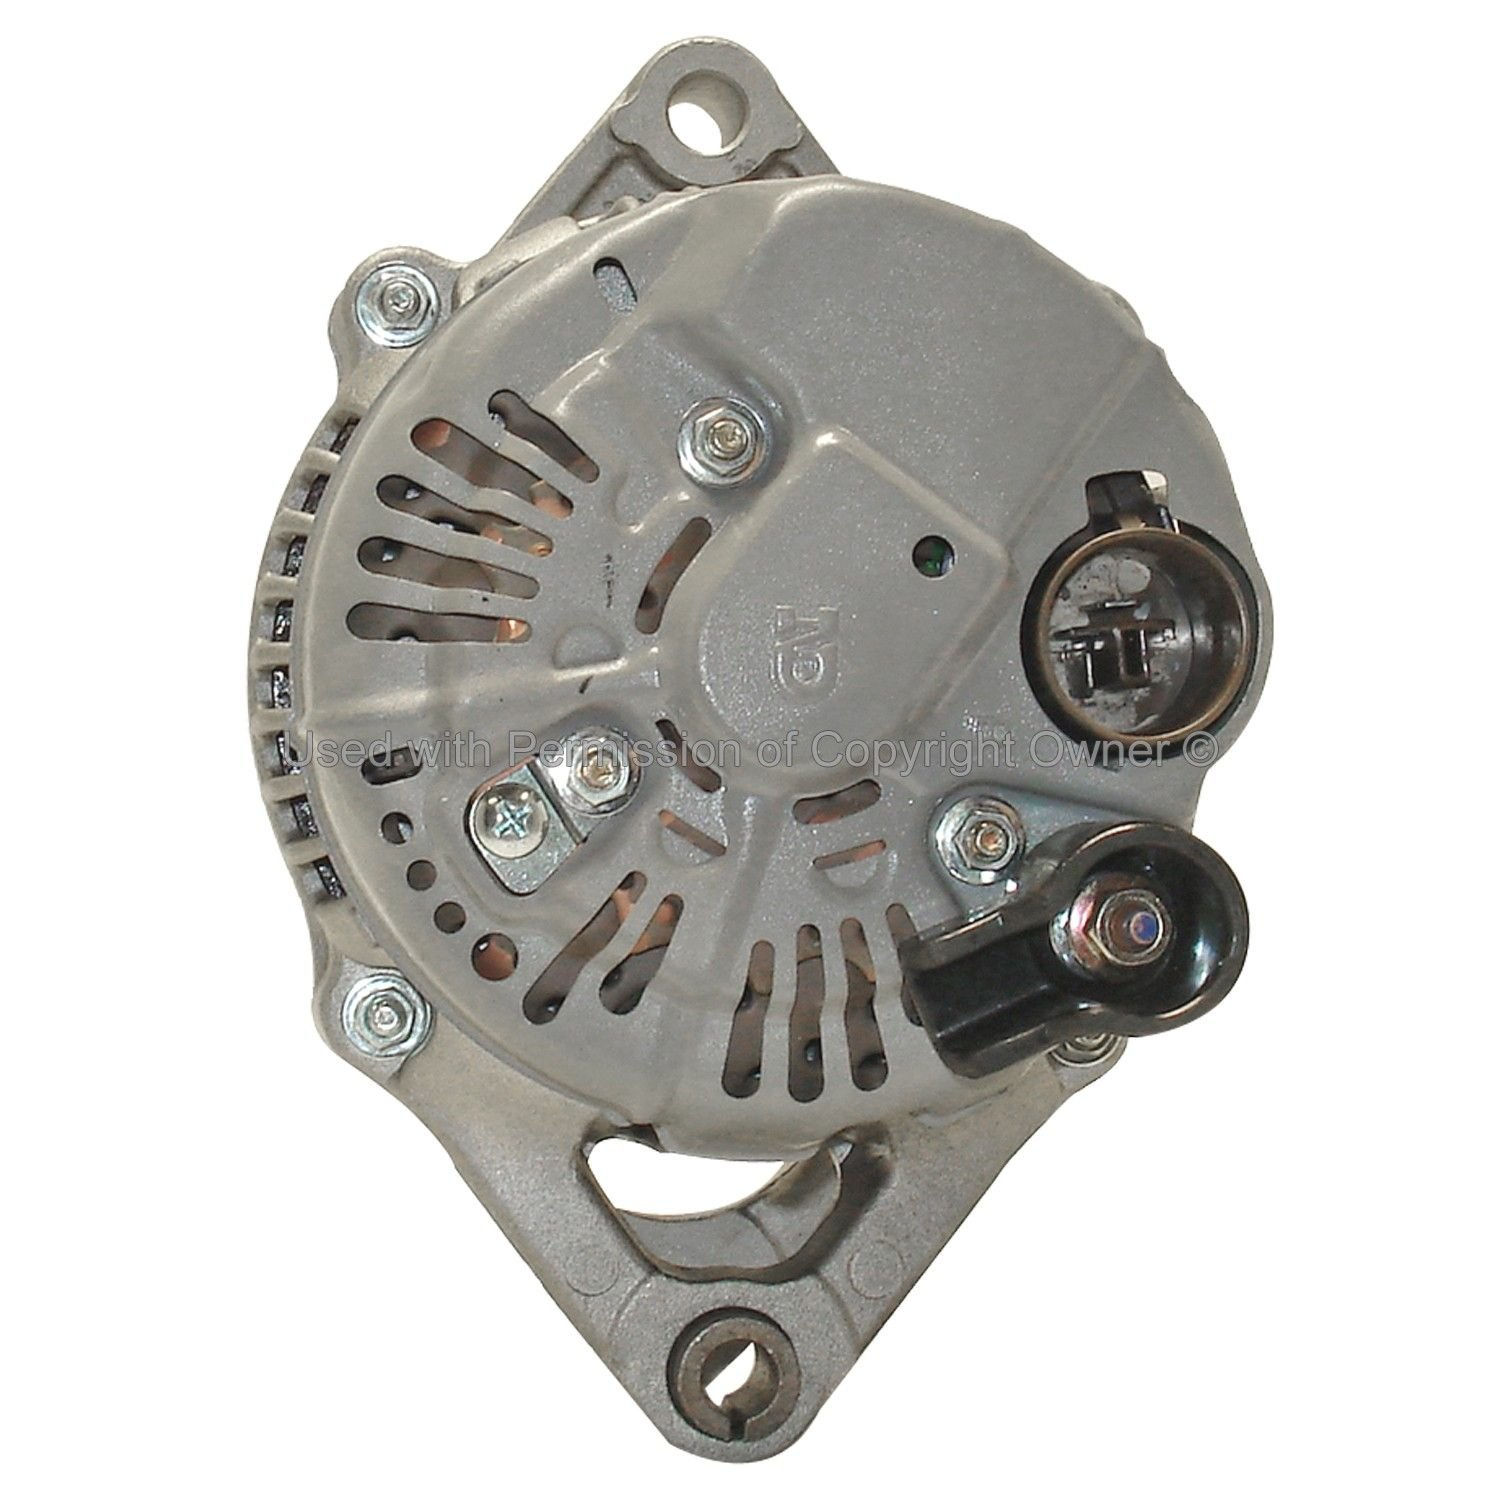 1999 Plymouth Voyager Alternator 4 Cyl 2 4l Mpa 13765 With 130 Amp